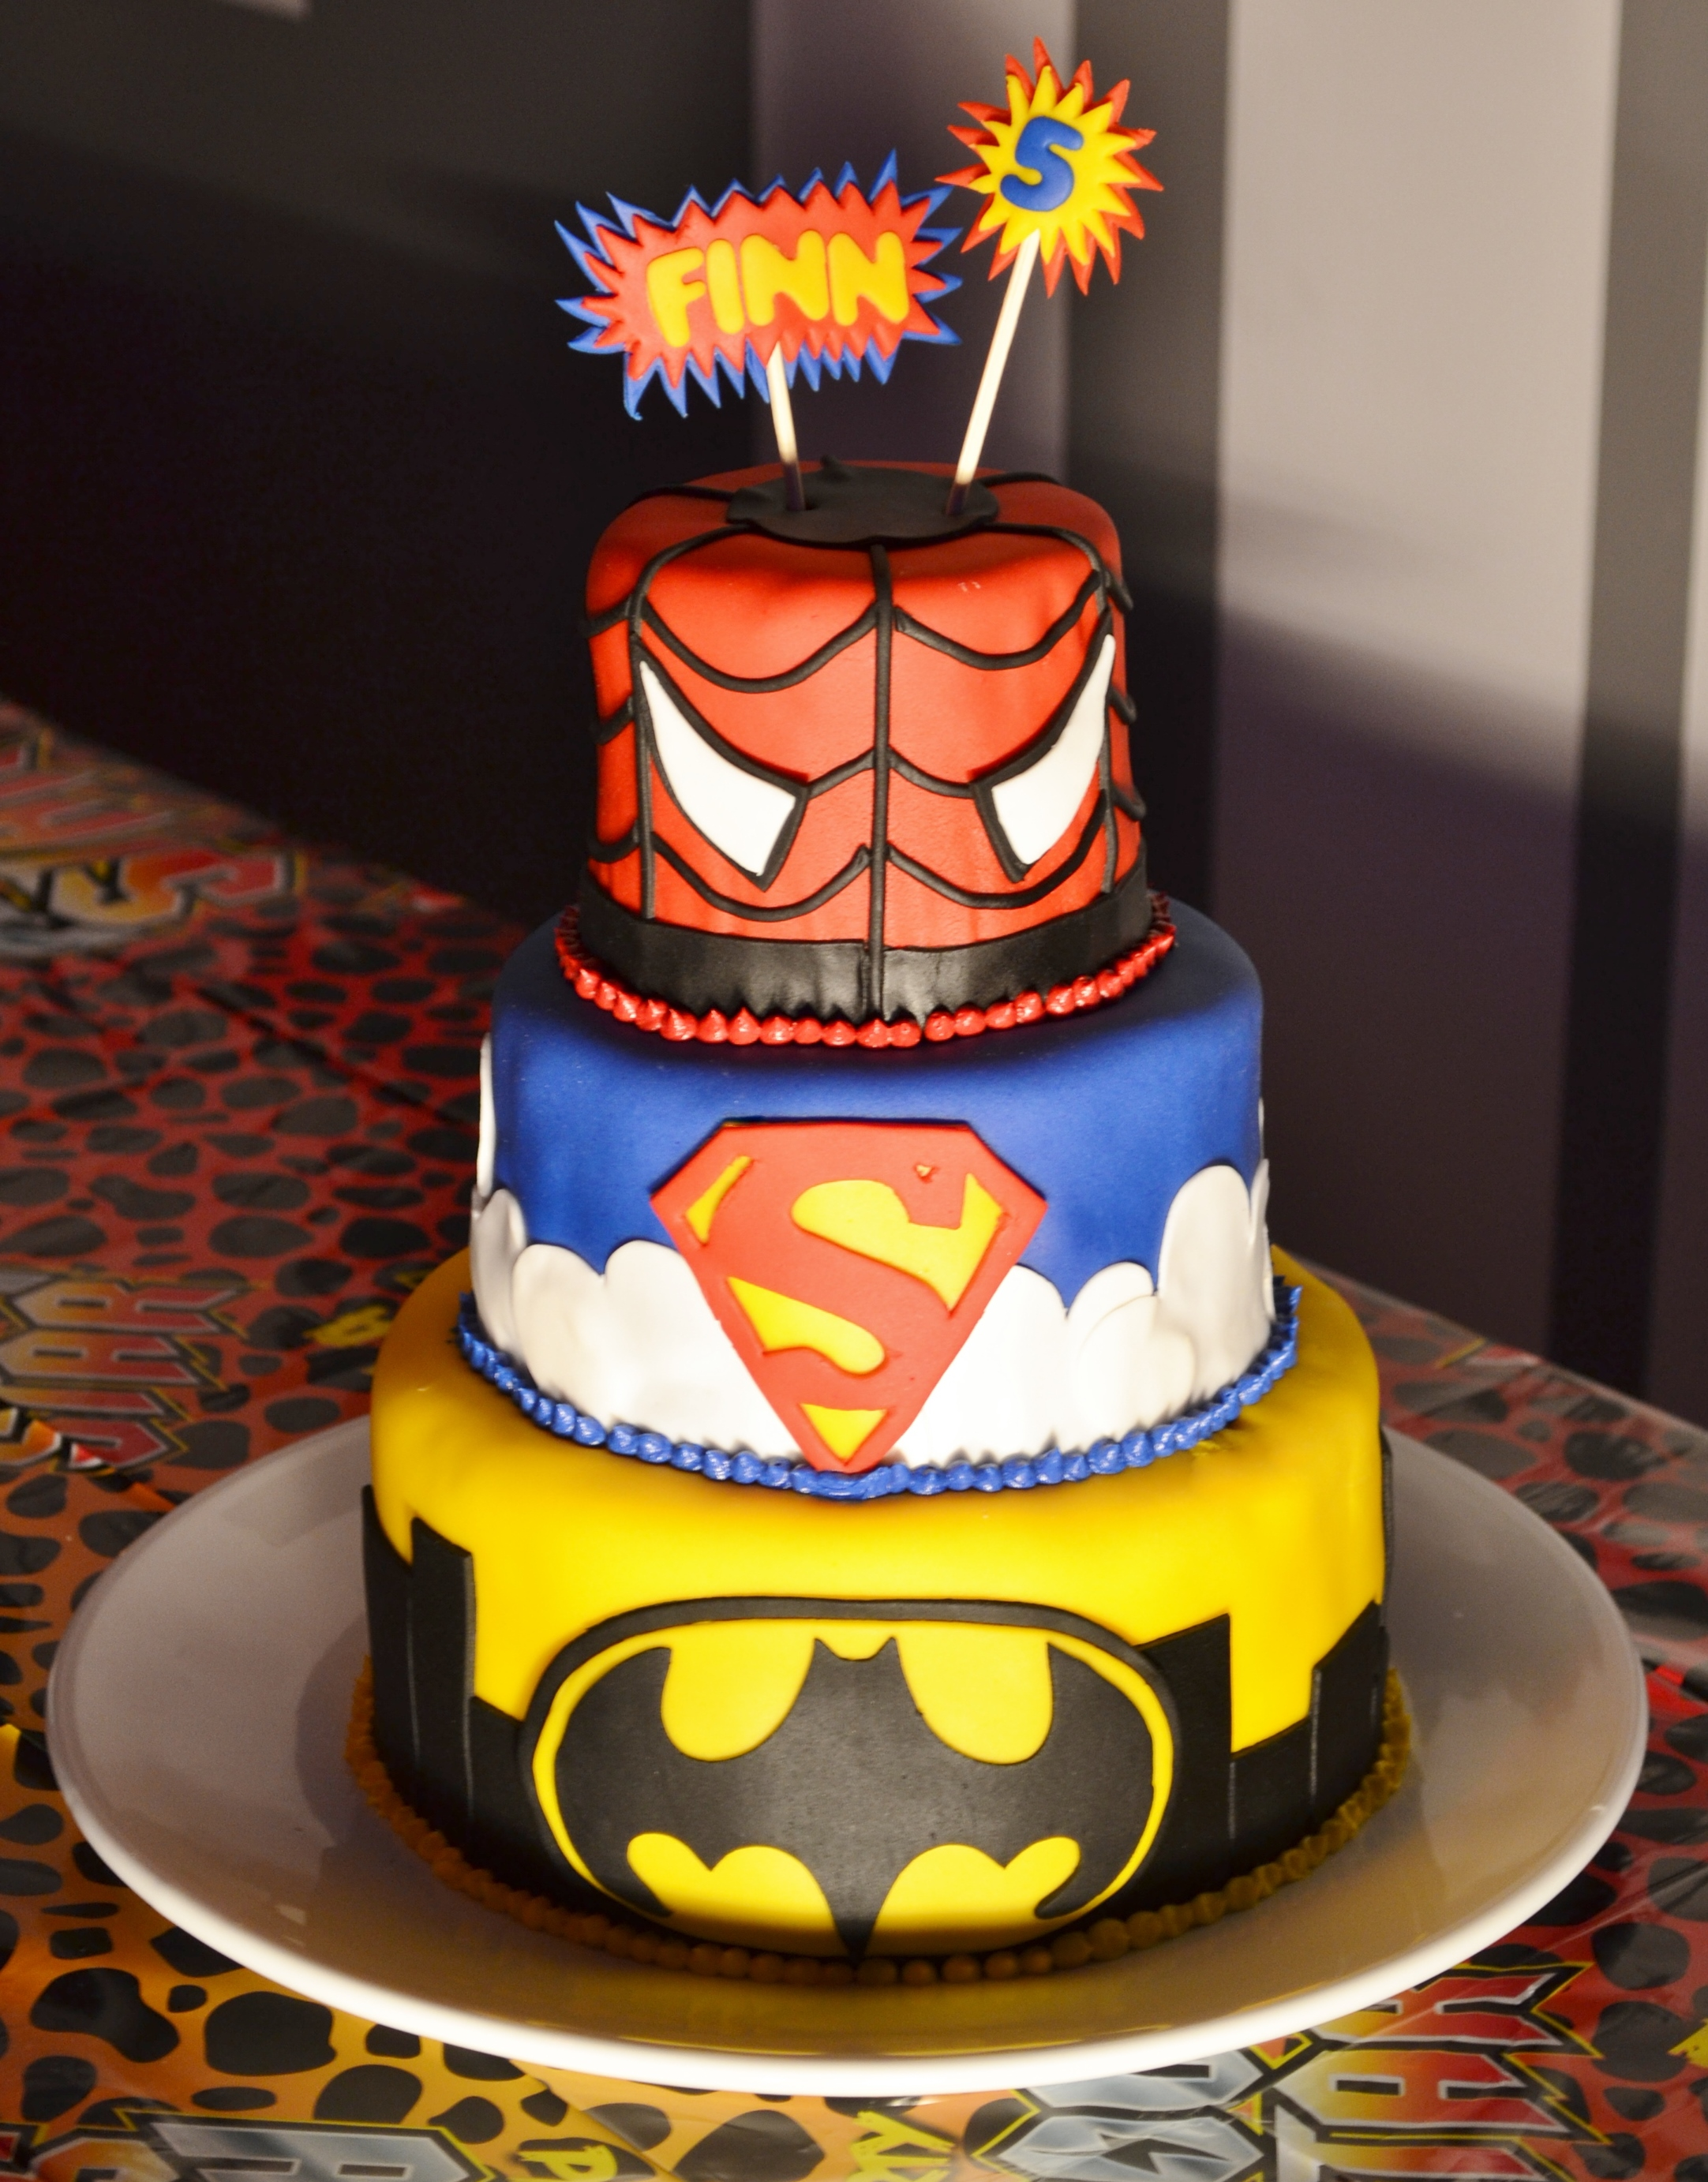 9 Superhero Birthday Cakes For A 6 Year Old Photo